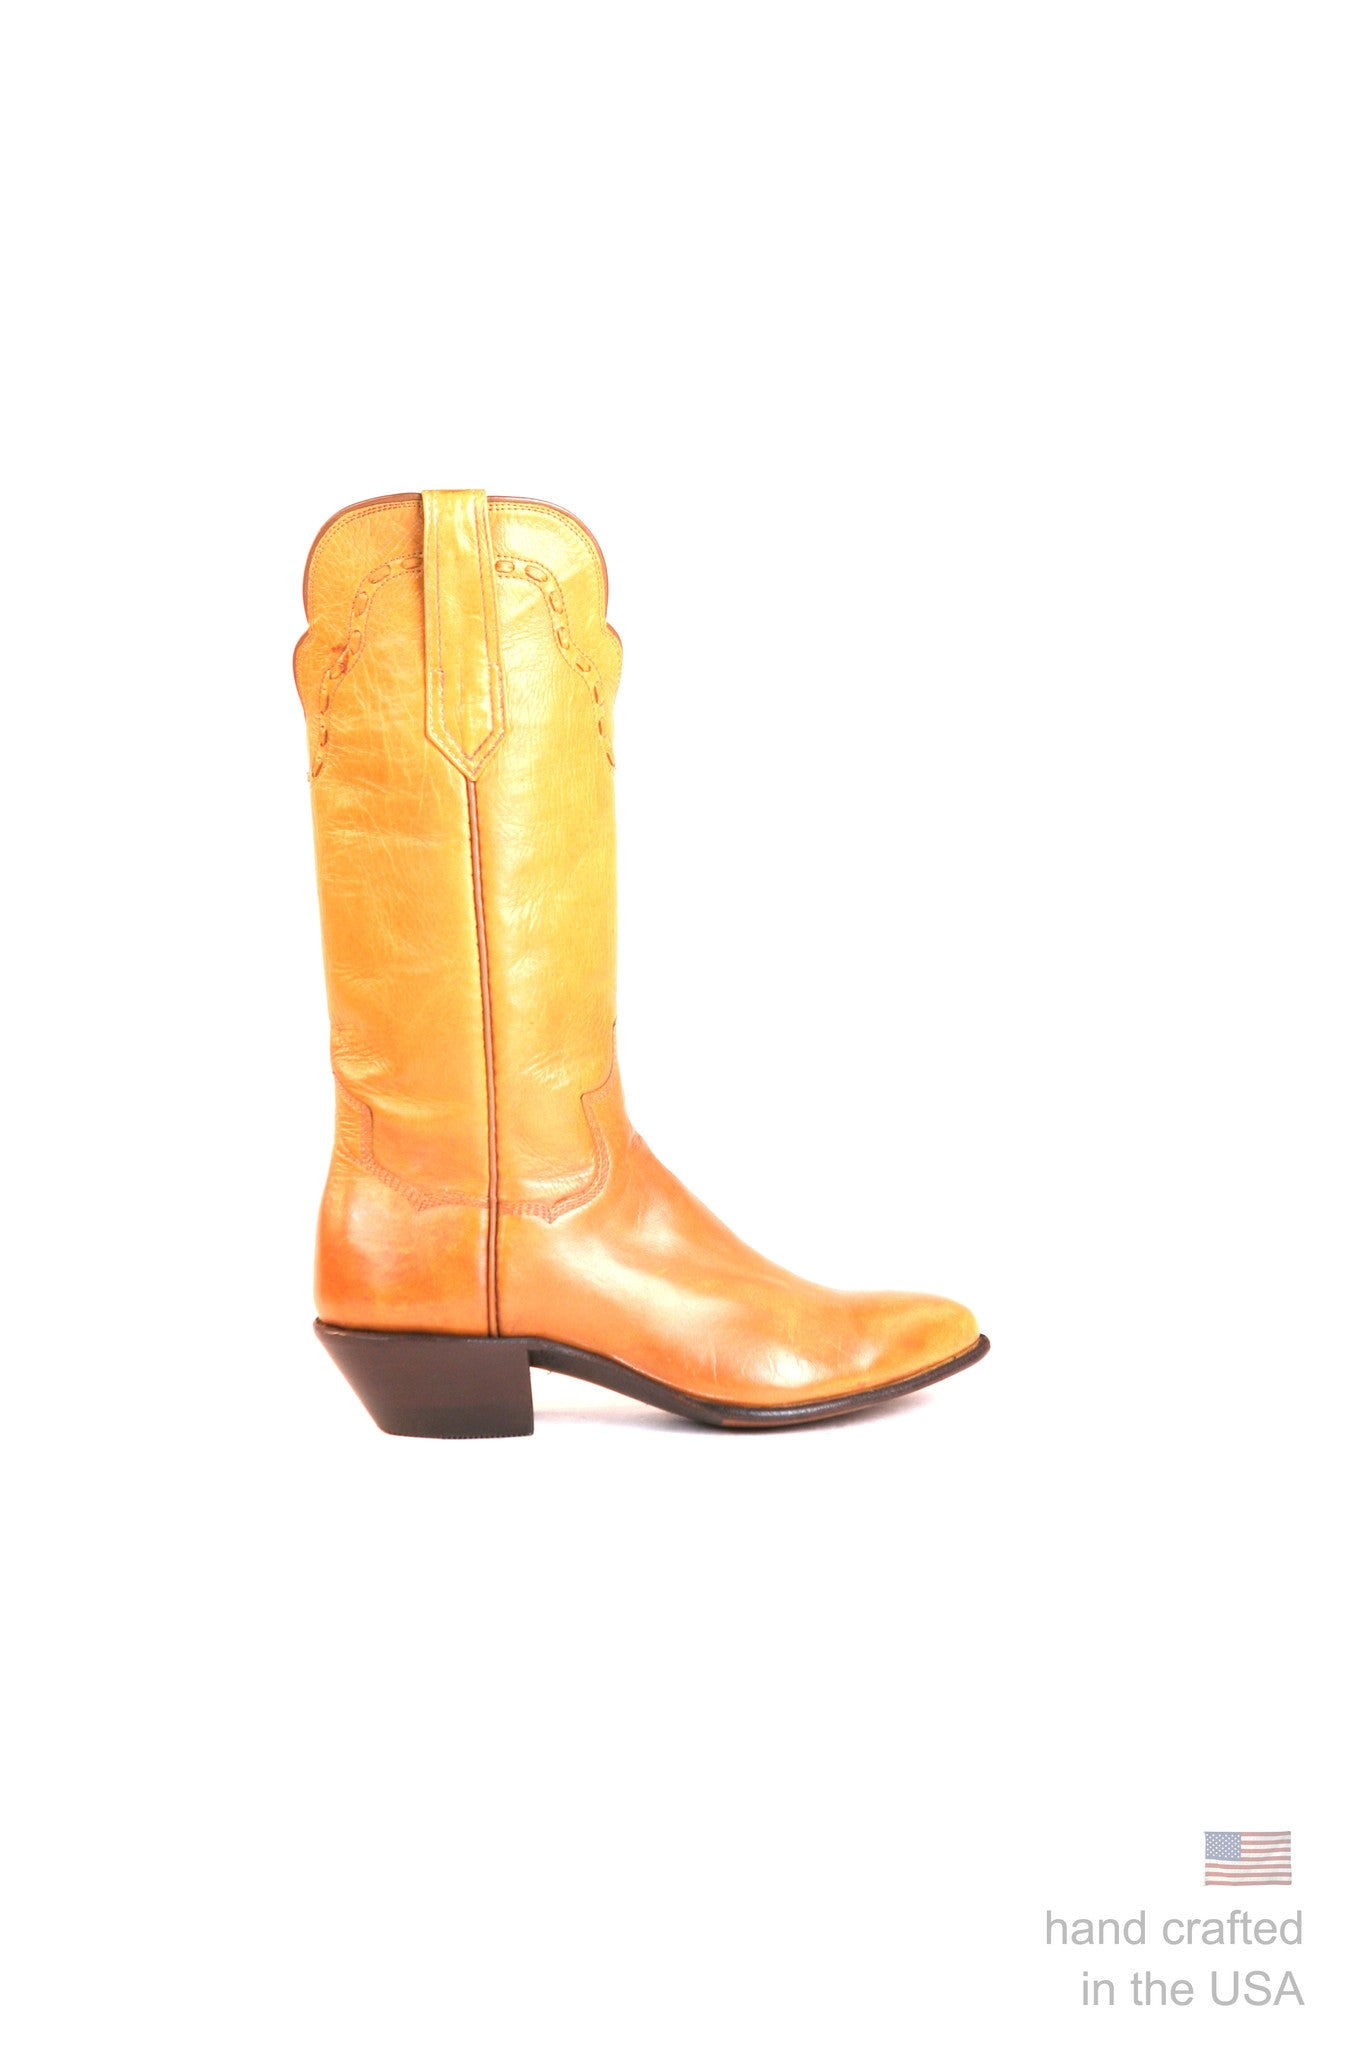 Singles: Boot 0071: Size 5.5 A